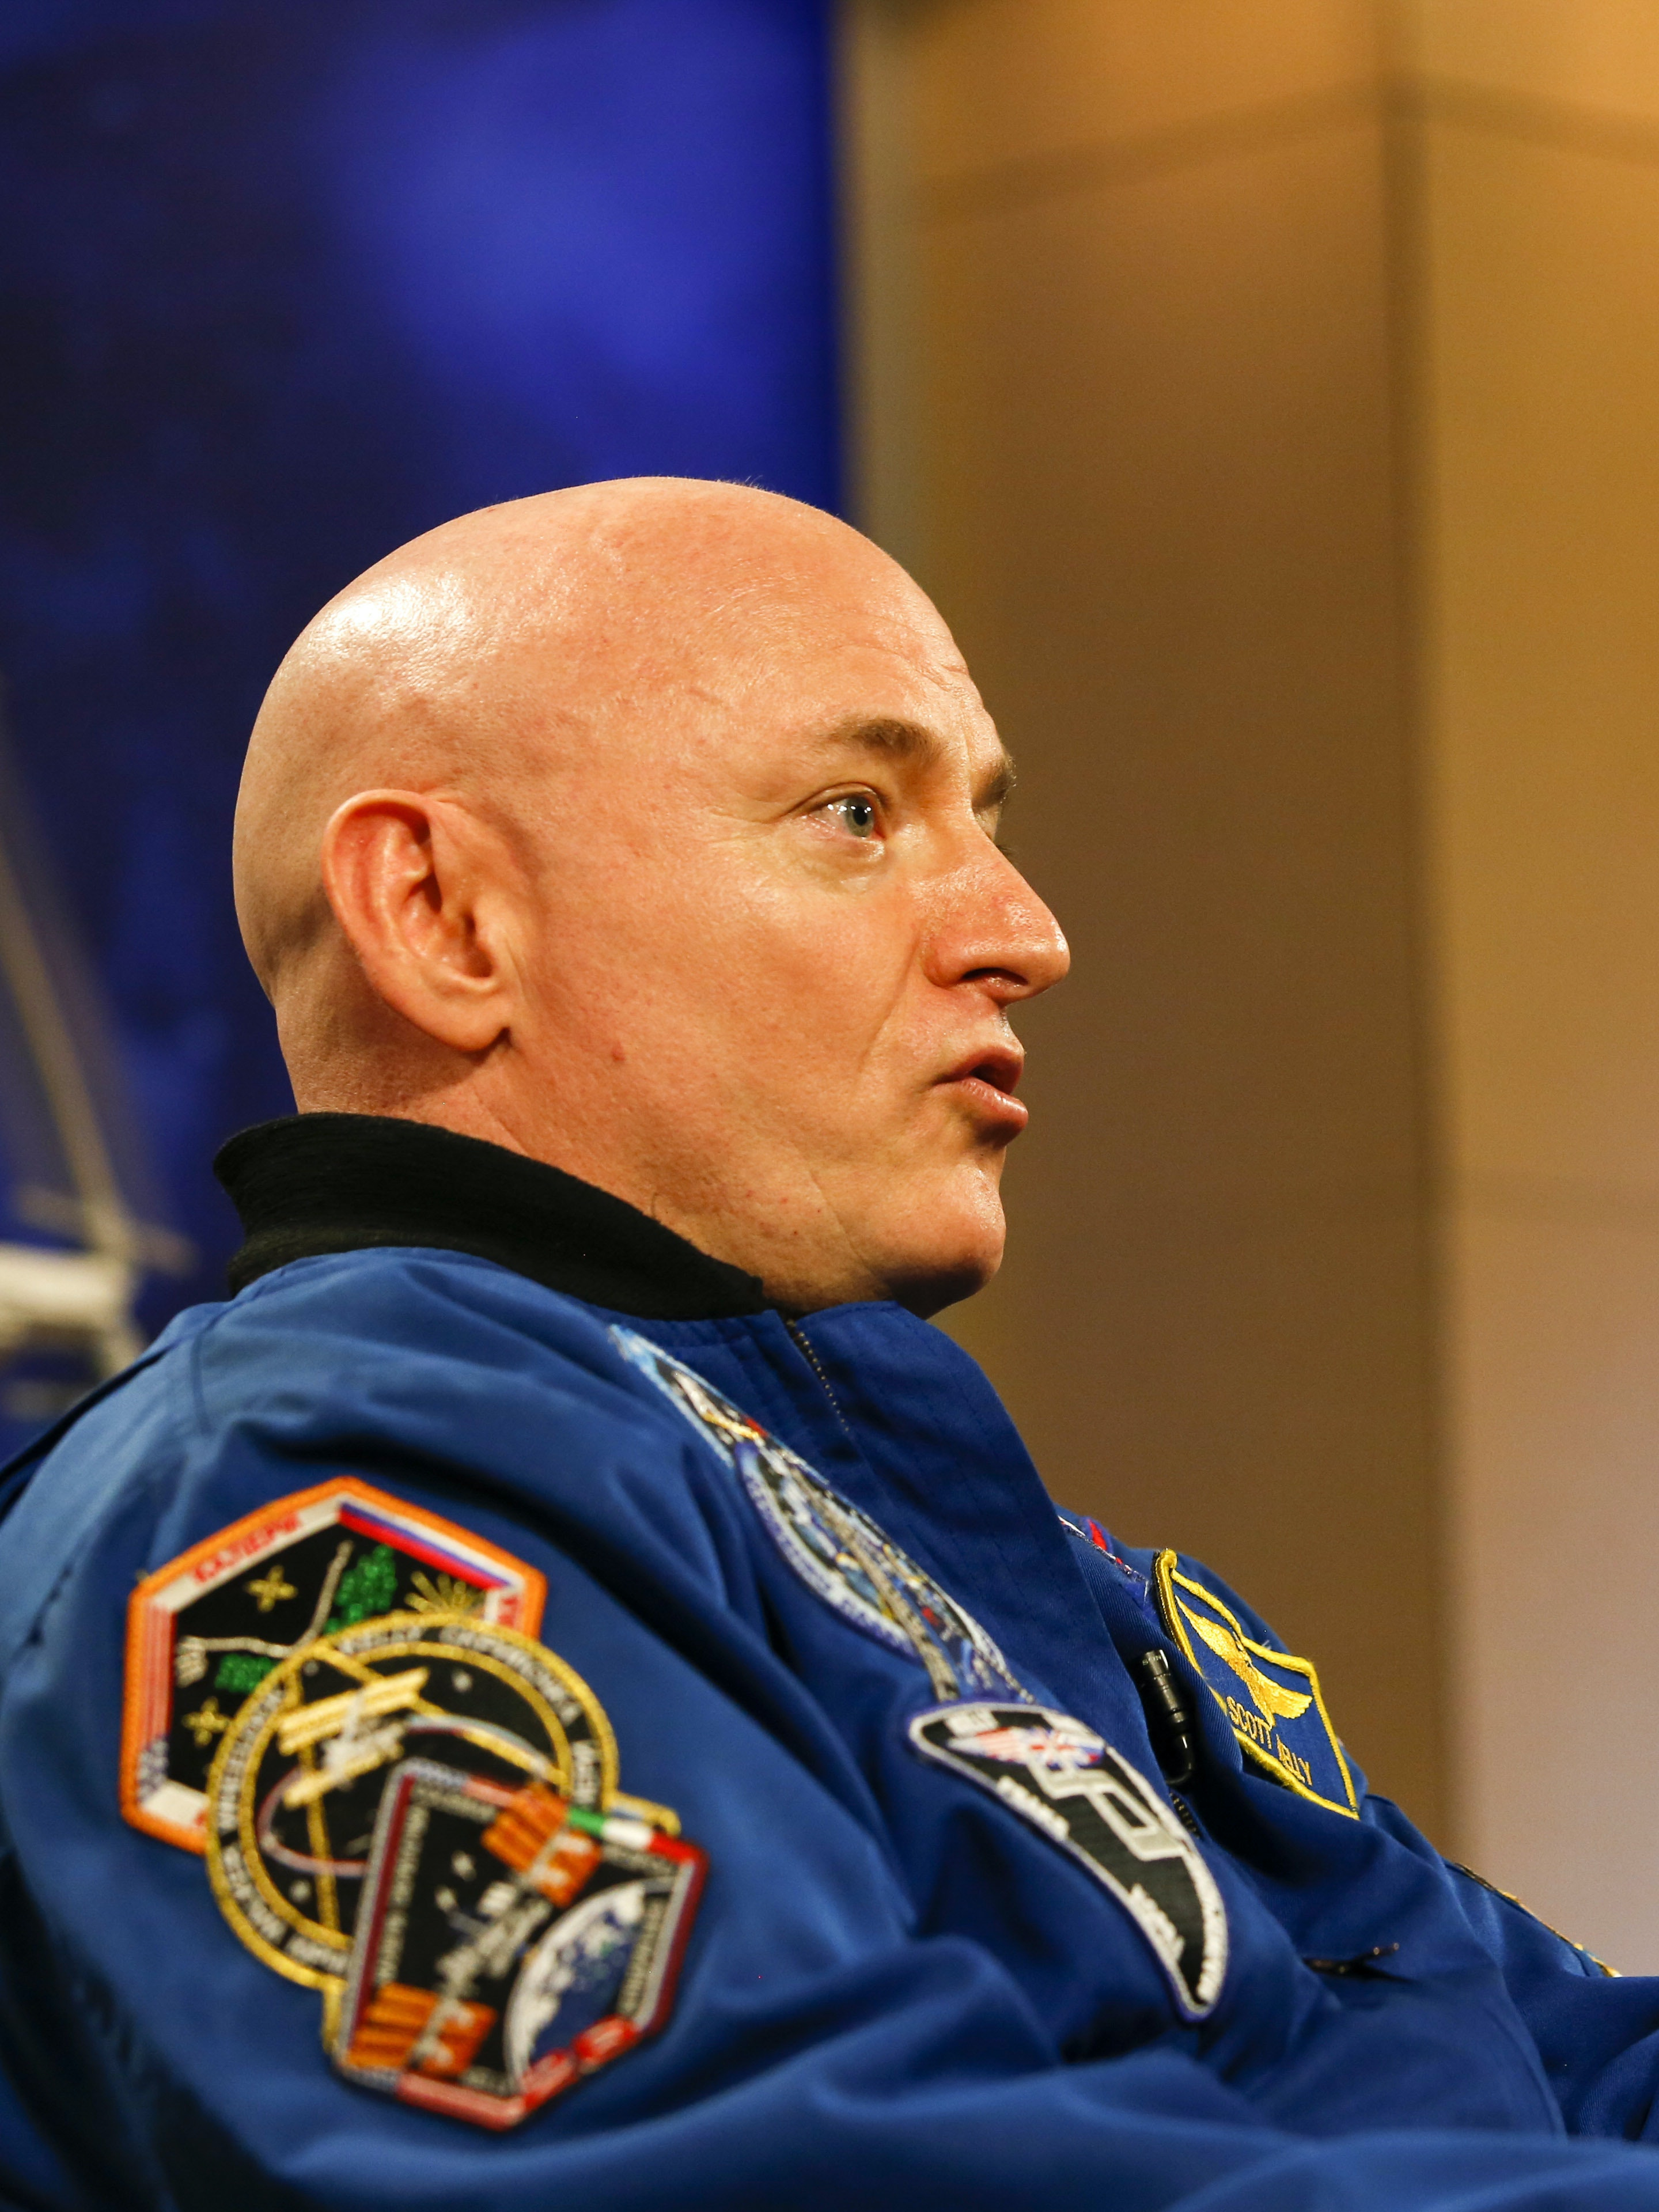 Everyone's favorite astronaut is coming to a theater near you.